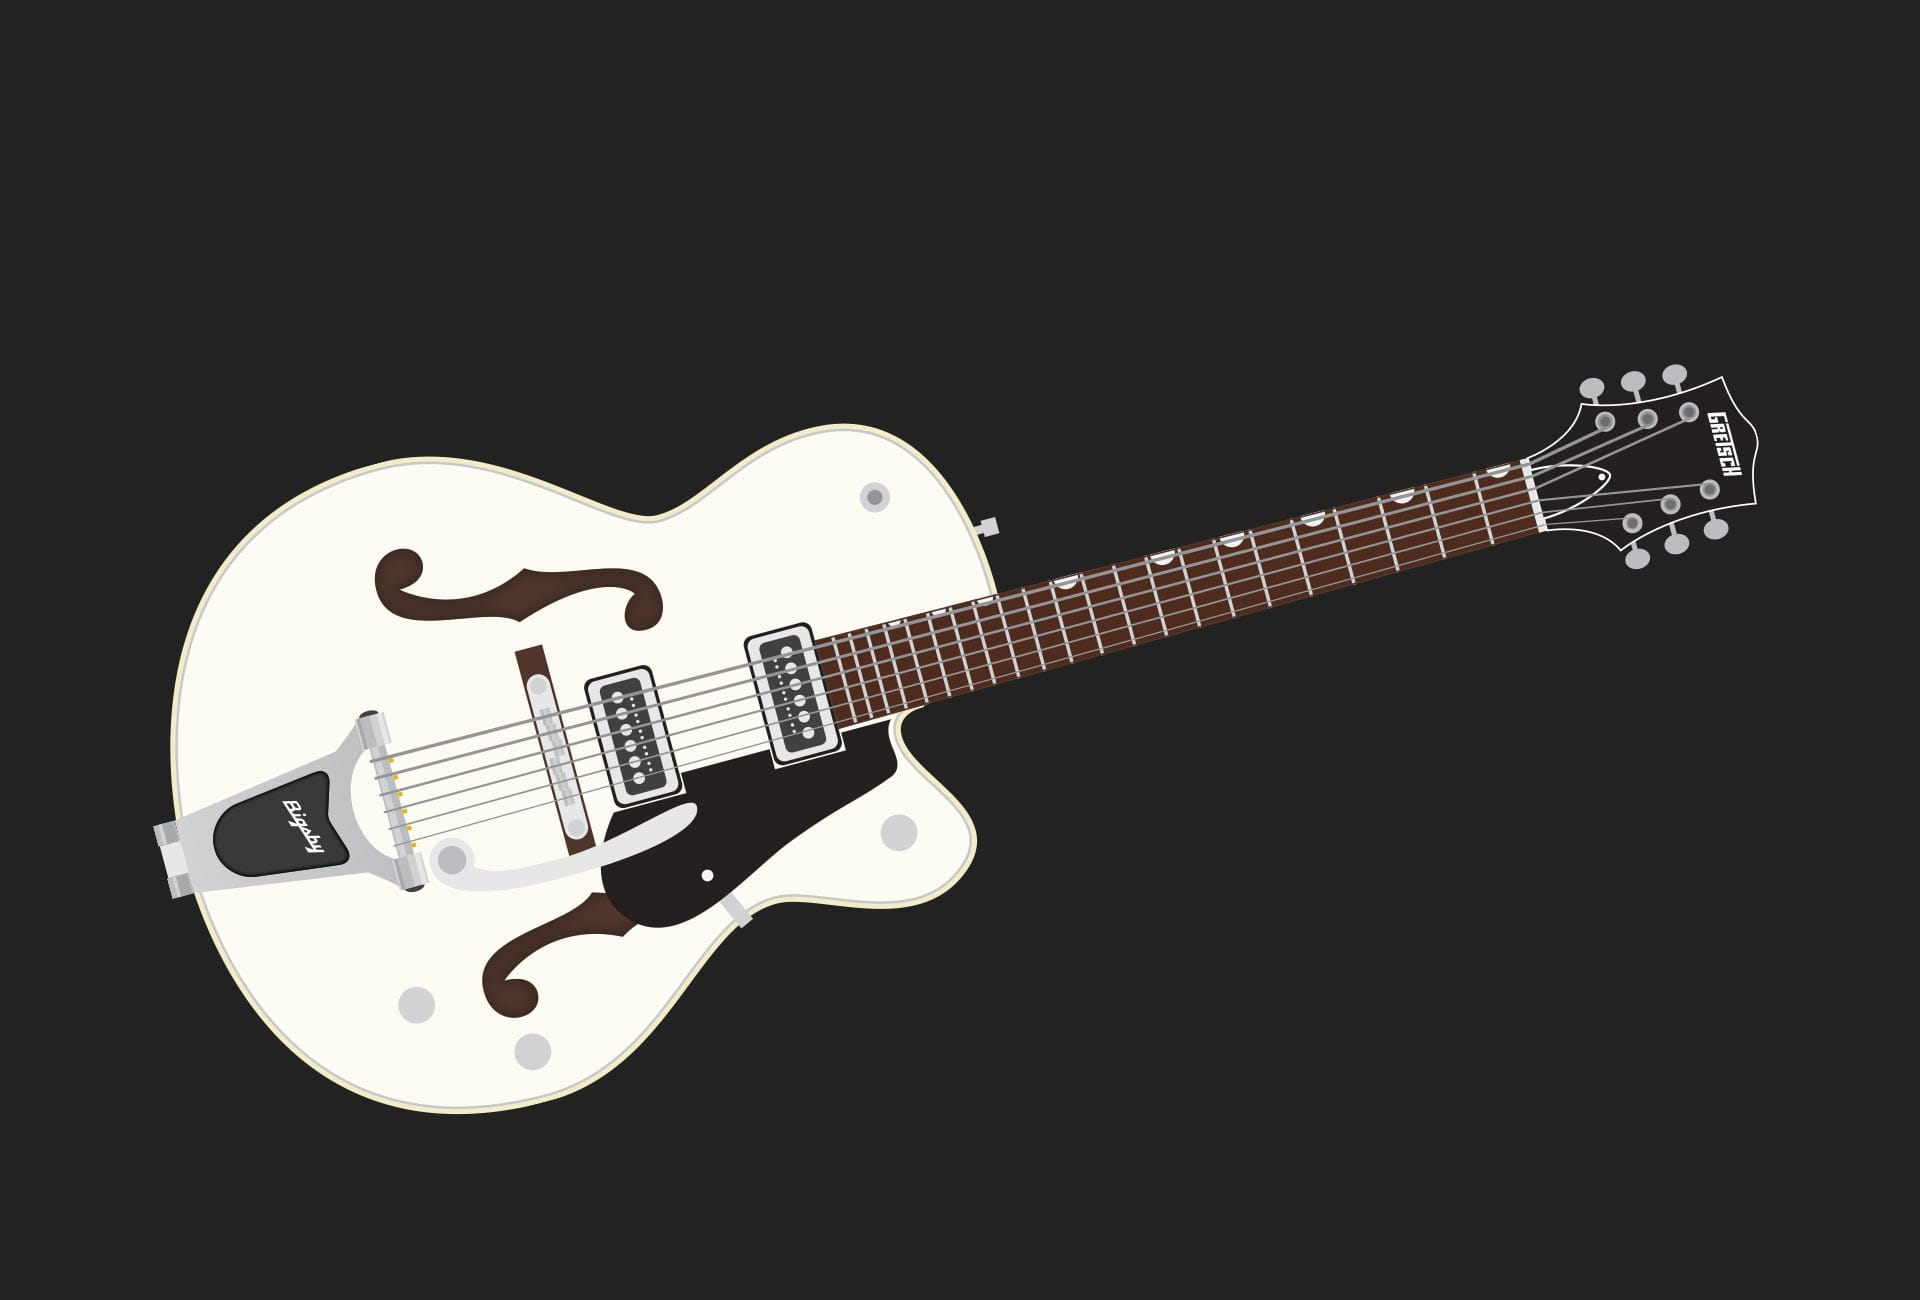 Illustrations - Gretsch Electromatic